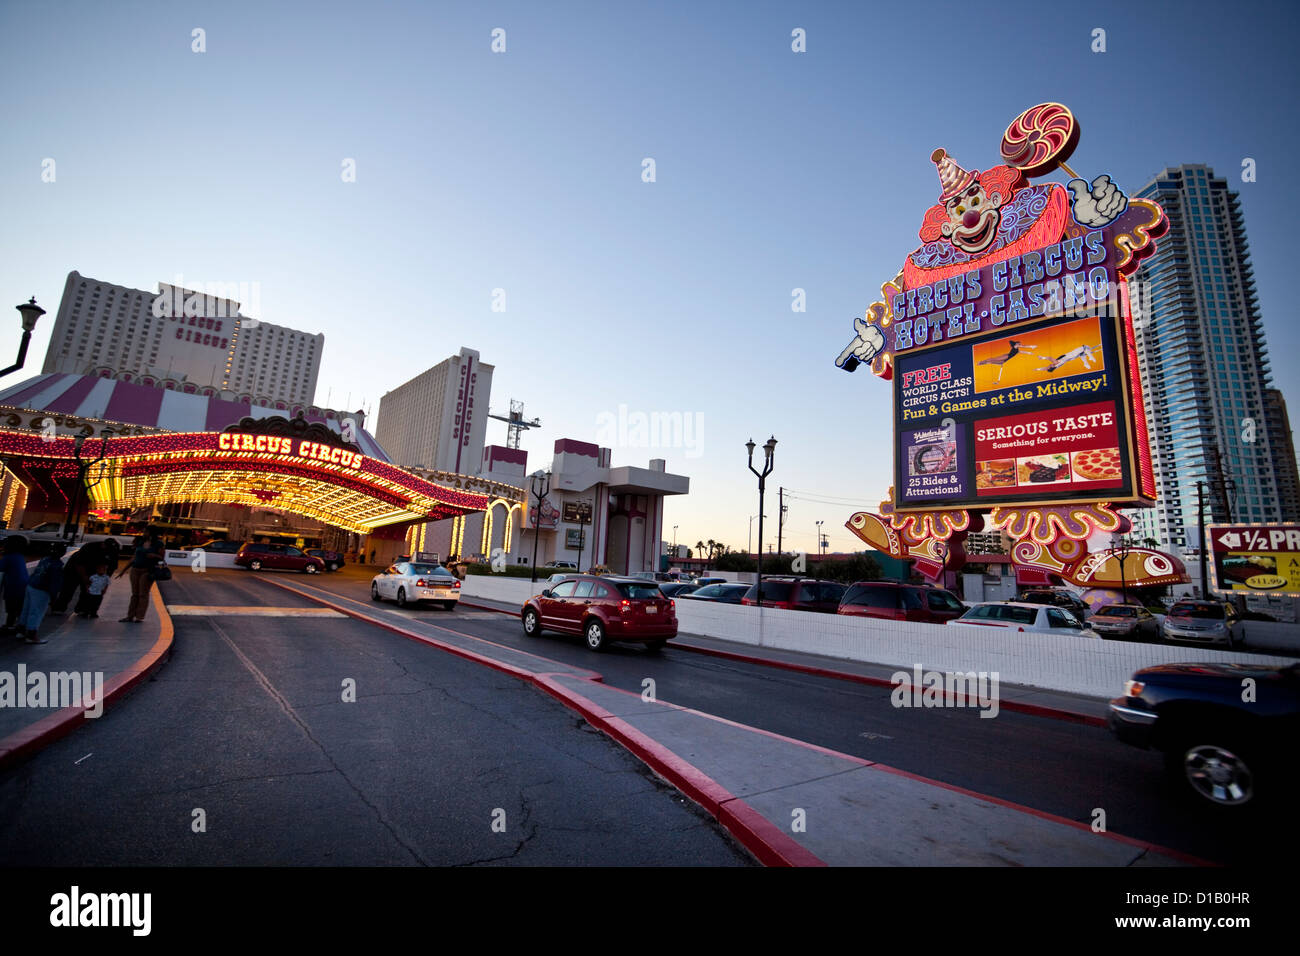 circus circus casino and hotel las vegas